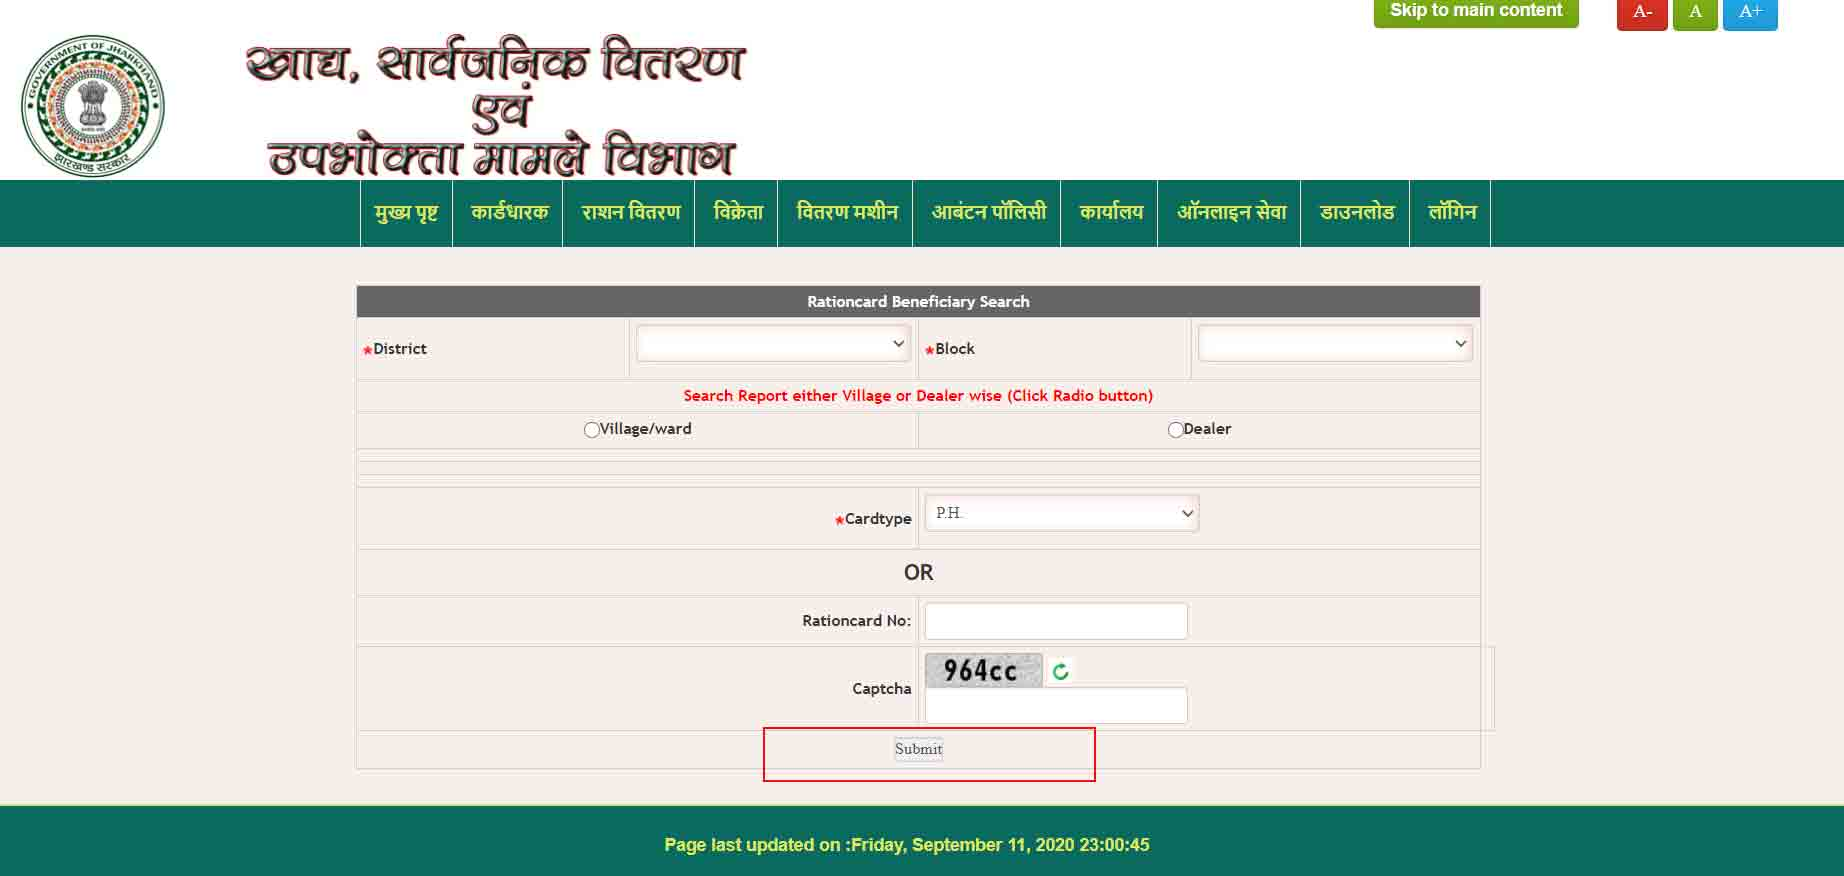 jharkhand ration card list form submit